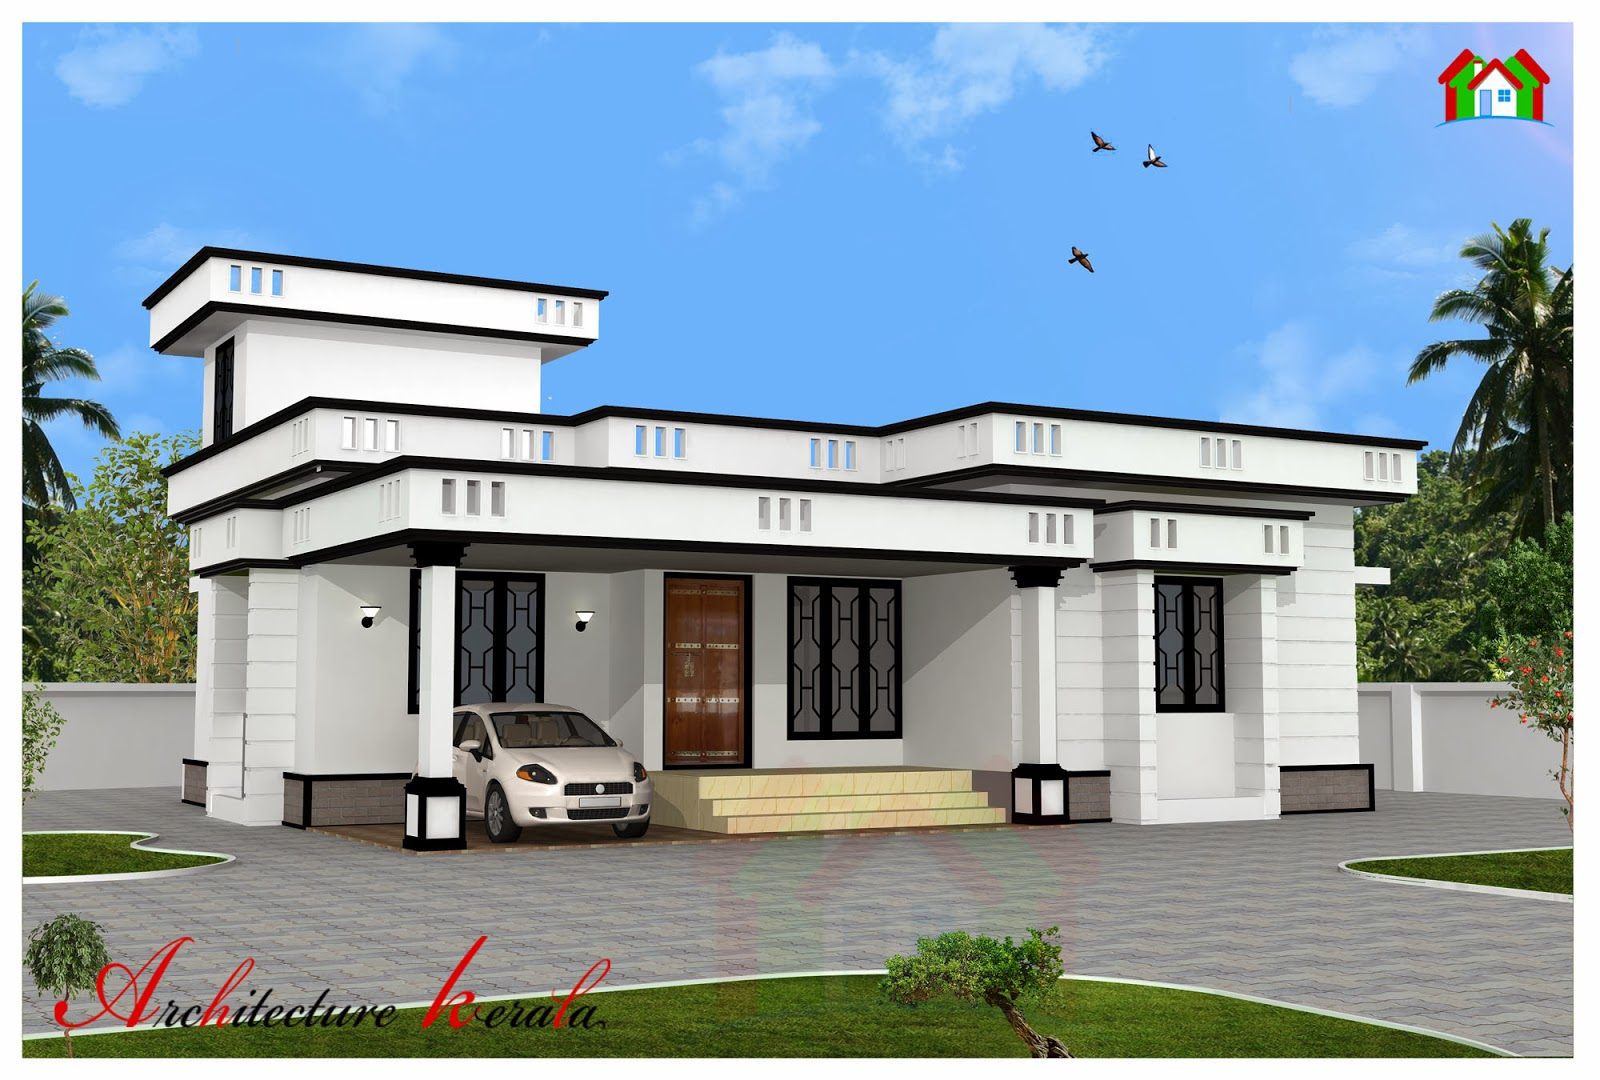 1200 square feet two bedroom house plan and elevation for 1200 sq ft home designs